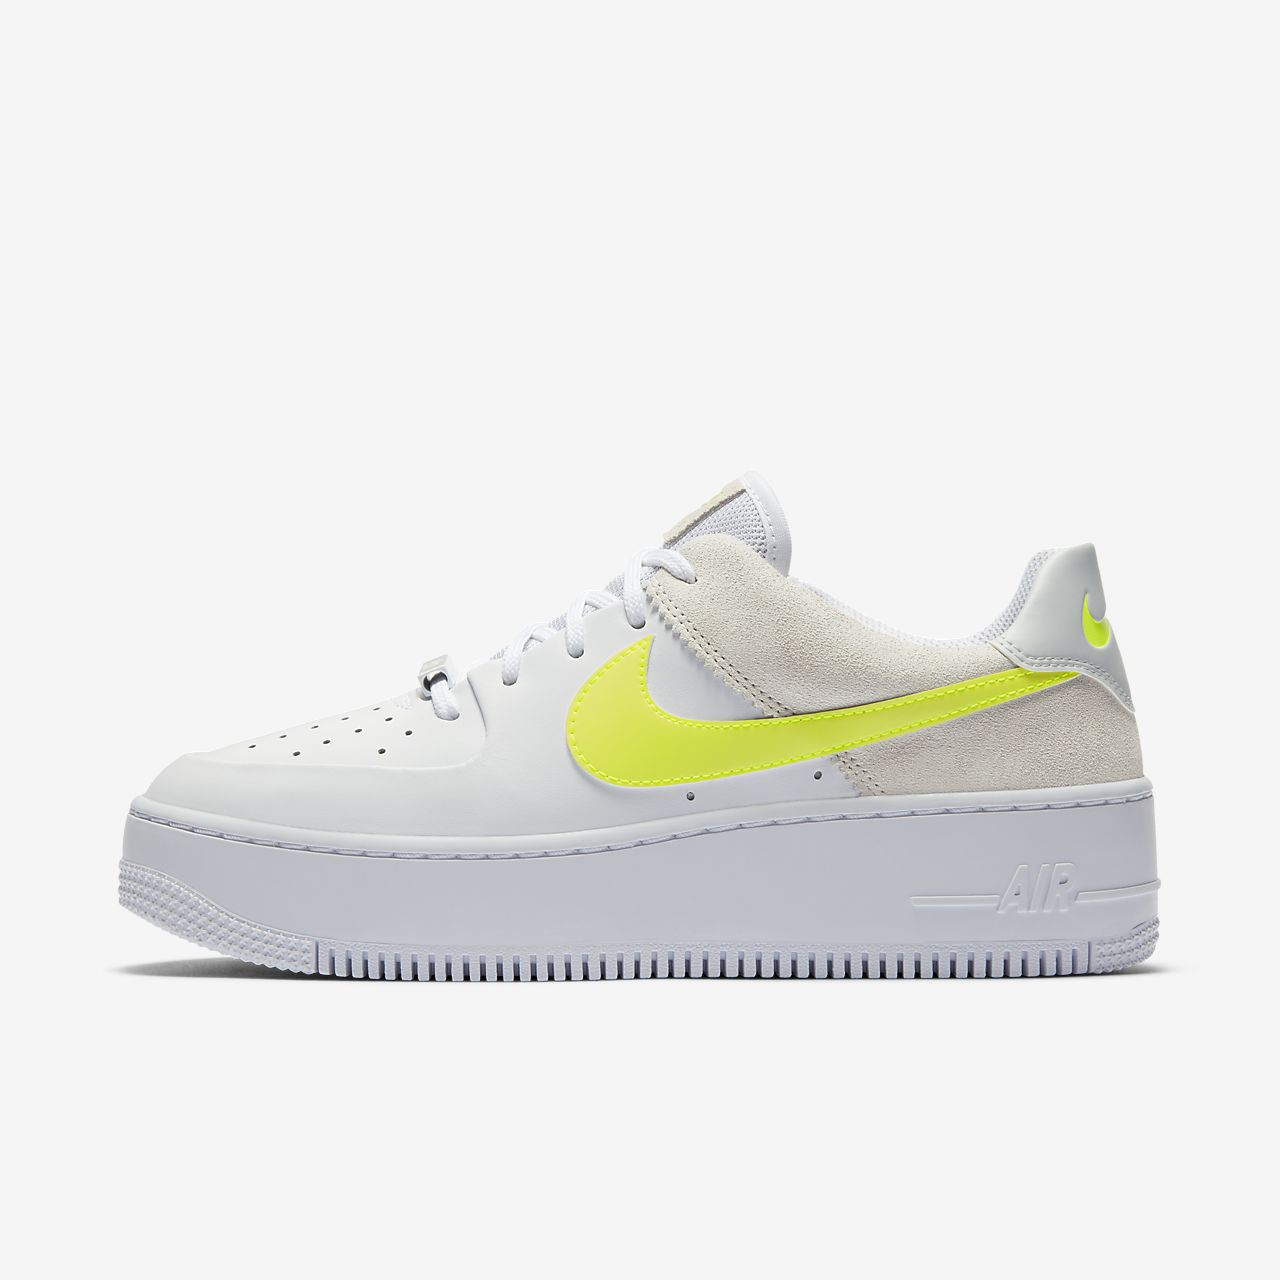 Nike Air Force 1 Running Shoes